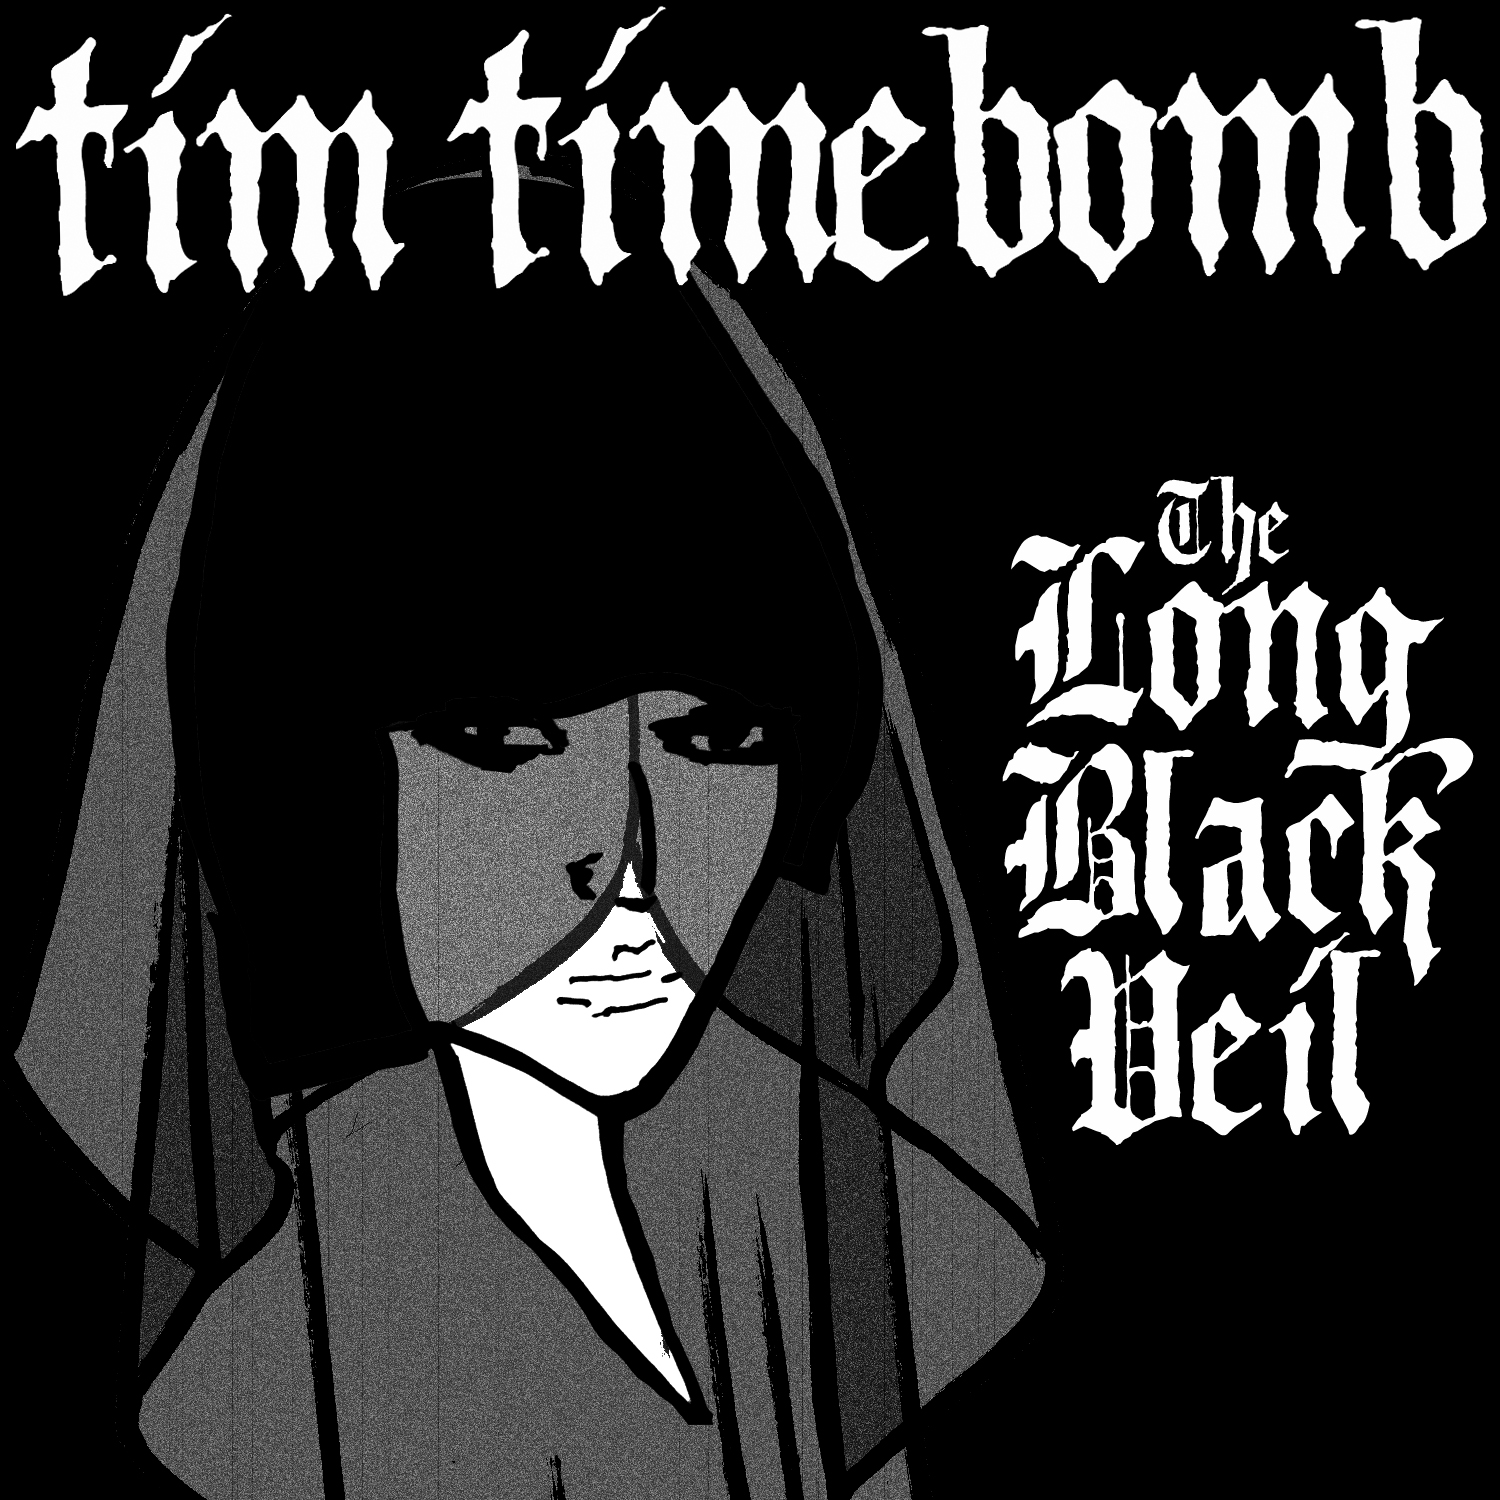 Tim timebomb and friends the long black veil